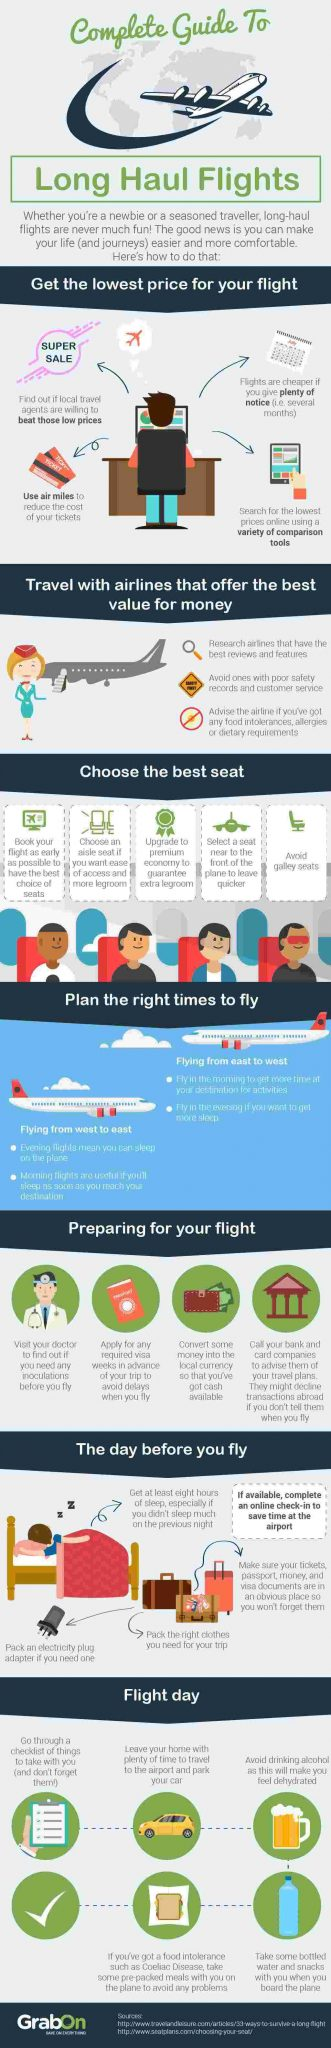 complete guide to long haul flights